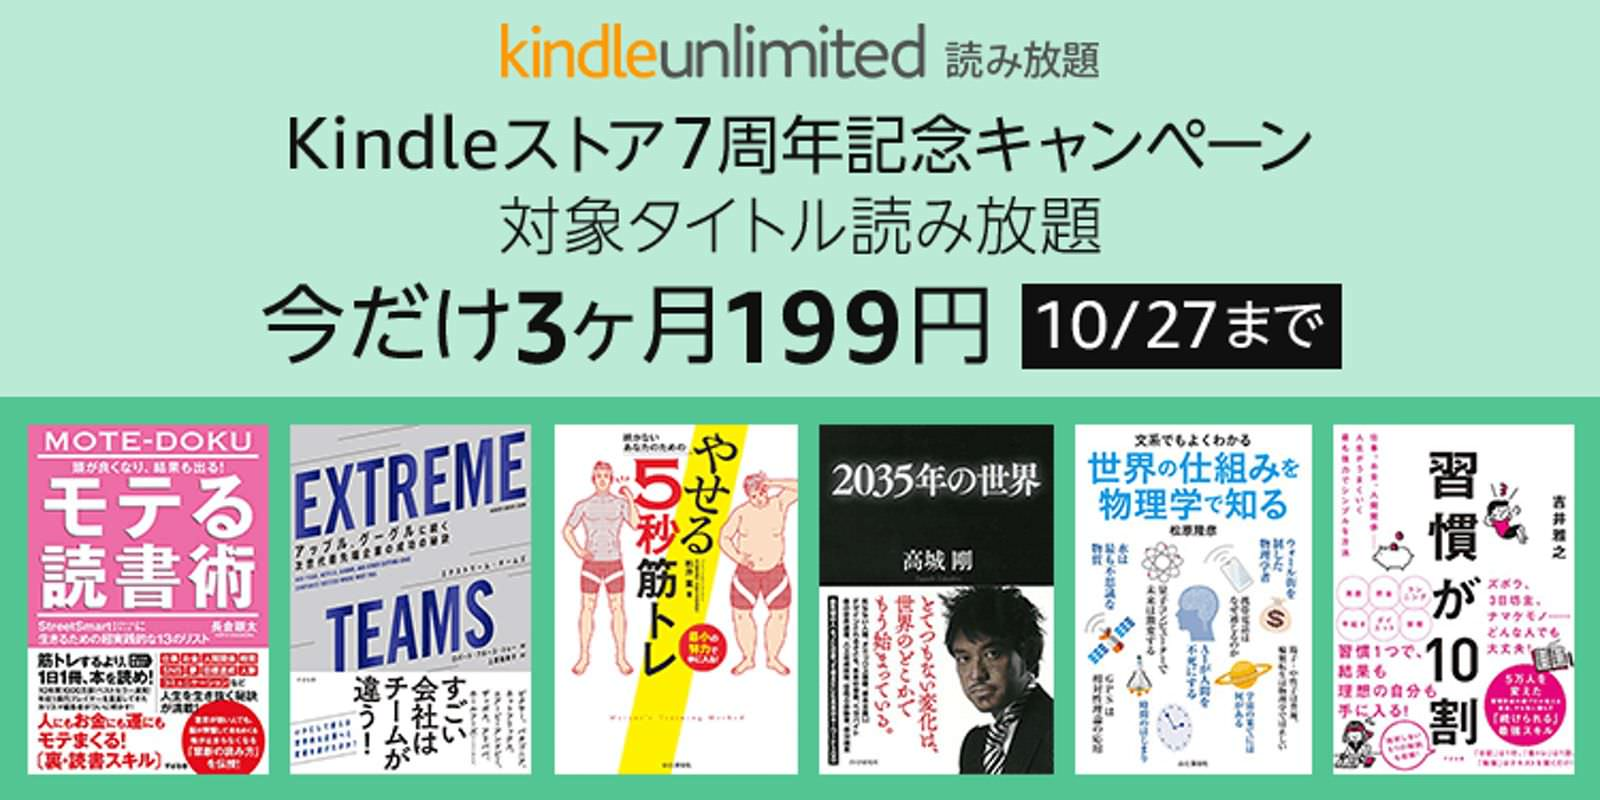 Kindle-Unlimited-3month-free-01.jpg